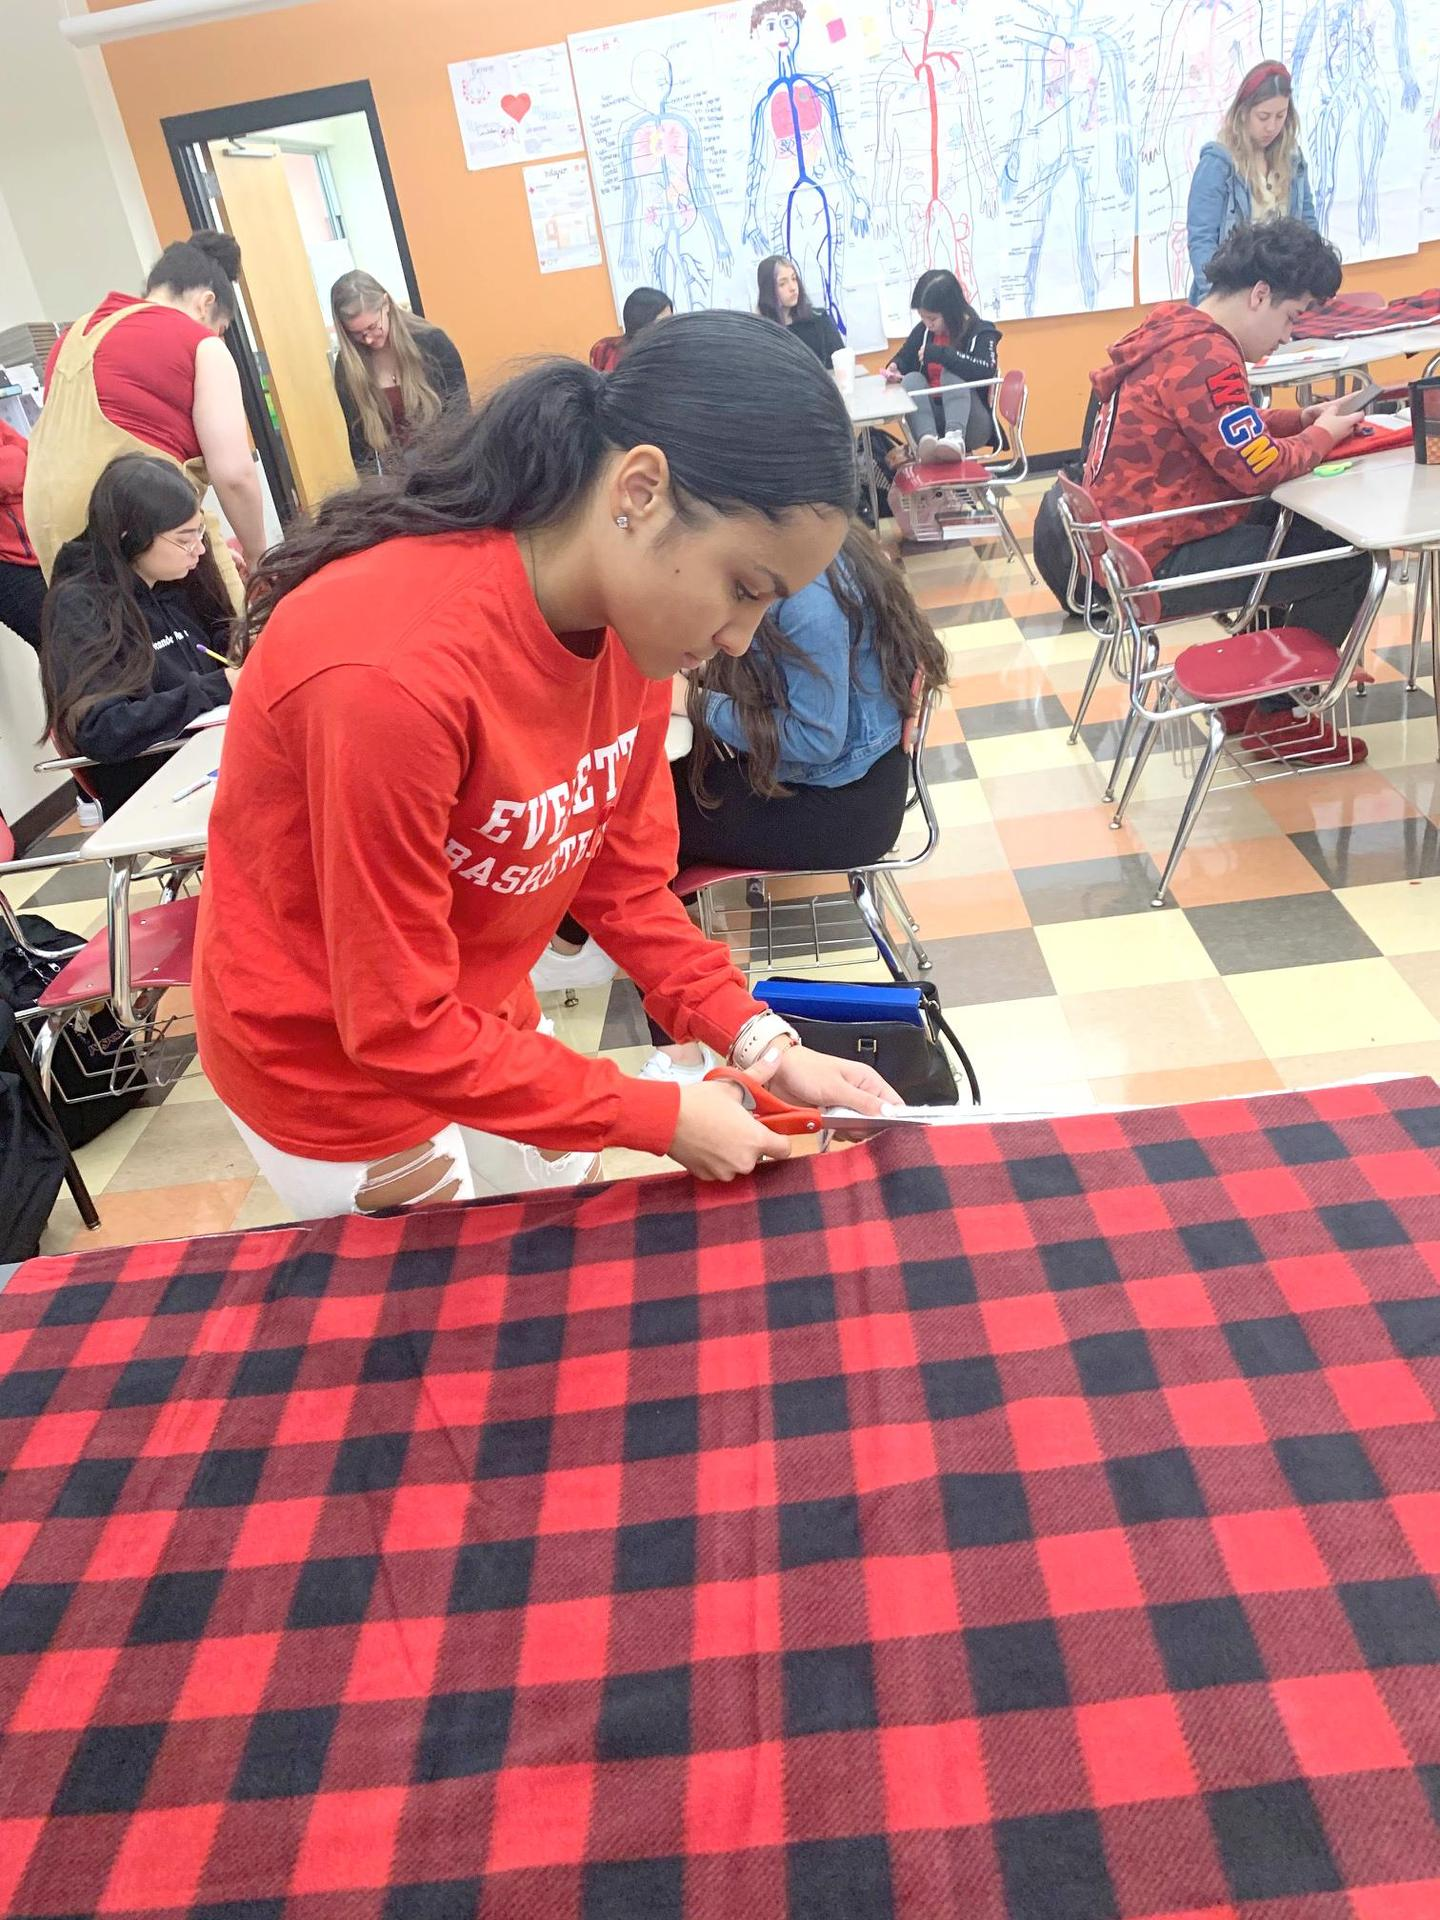 A student cuts a piece of fabric to make a scarf